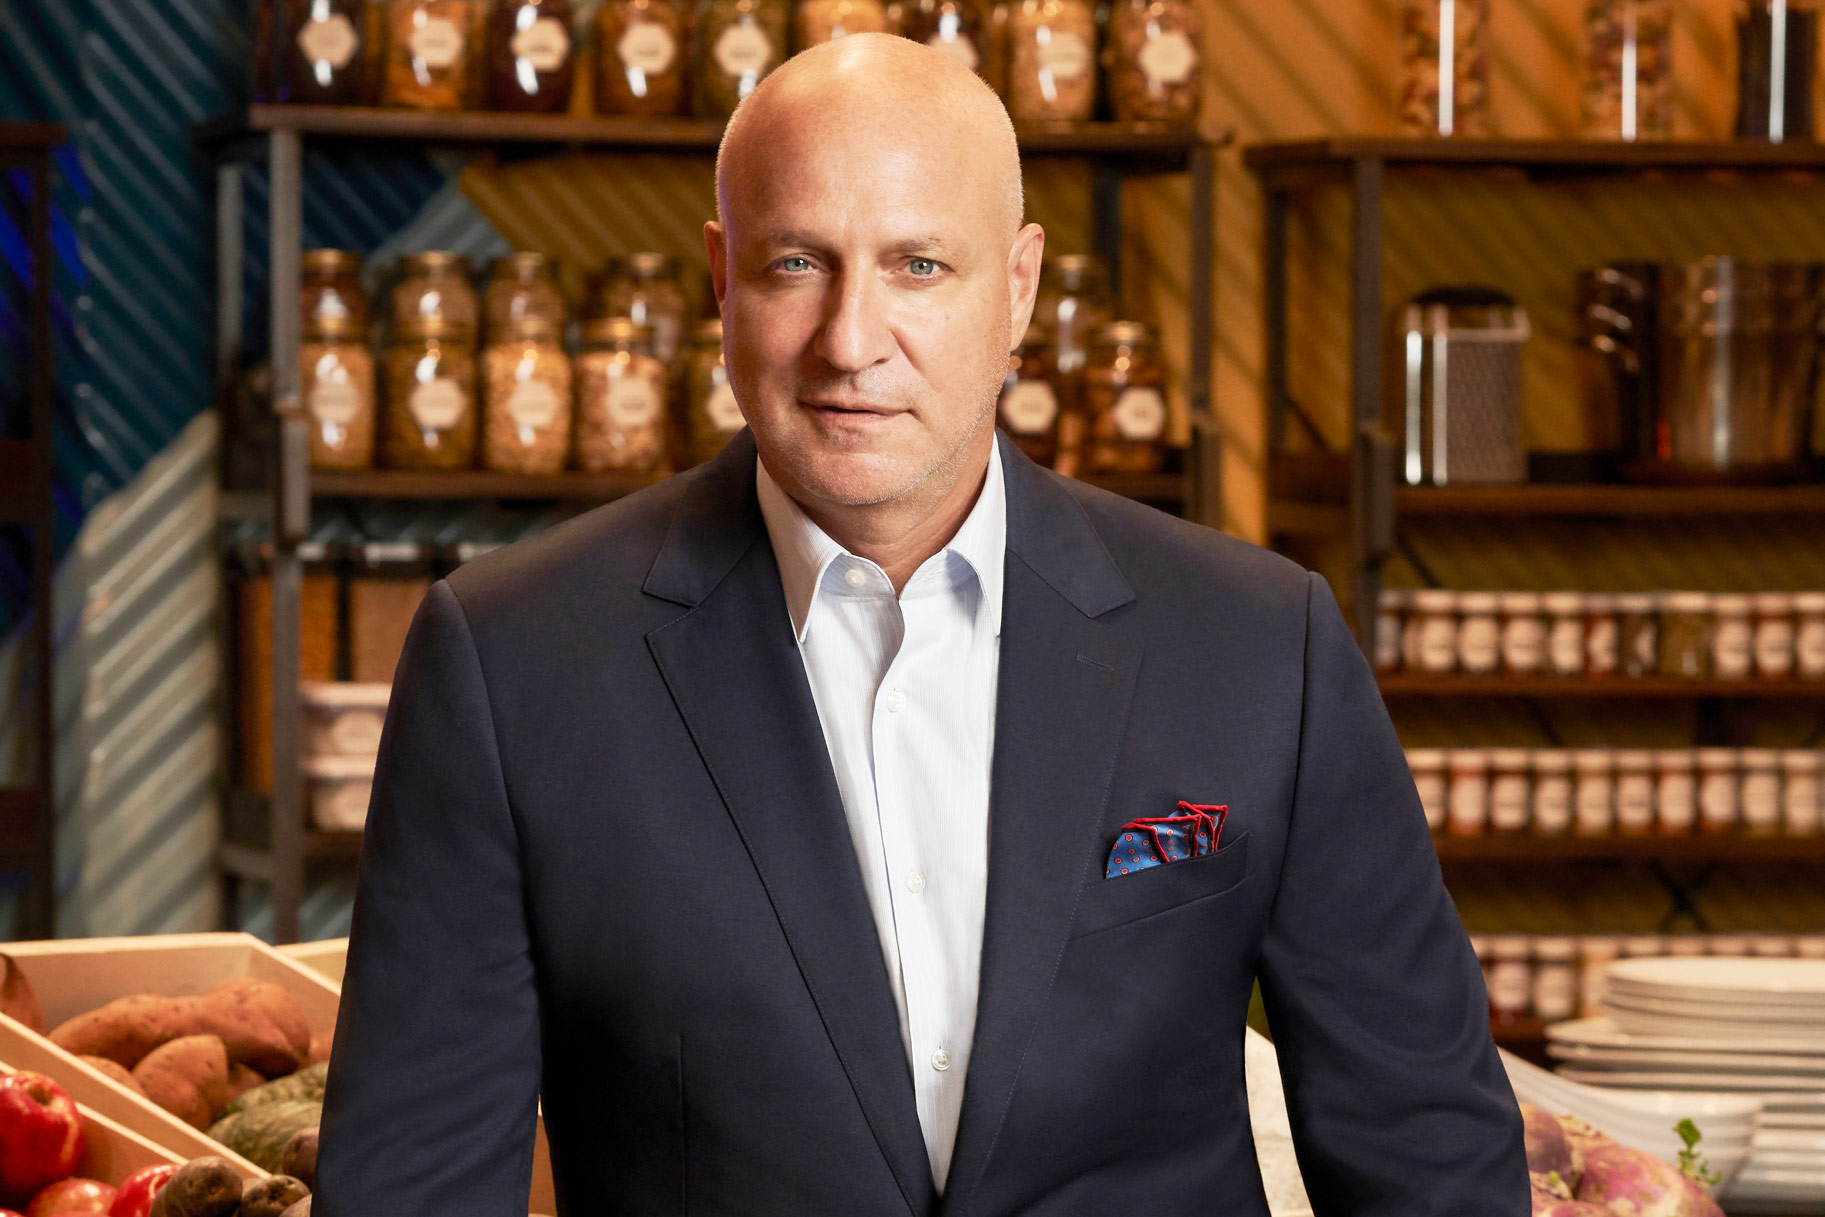 Tom Colicchio Worst Top Chef Judge